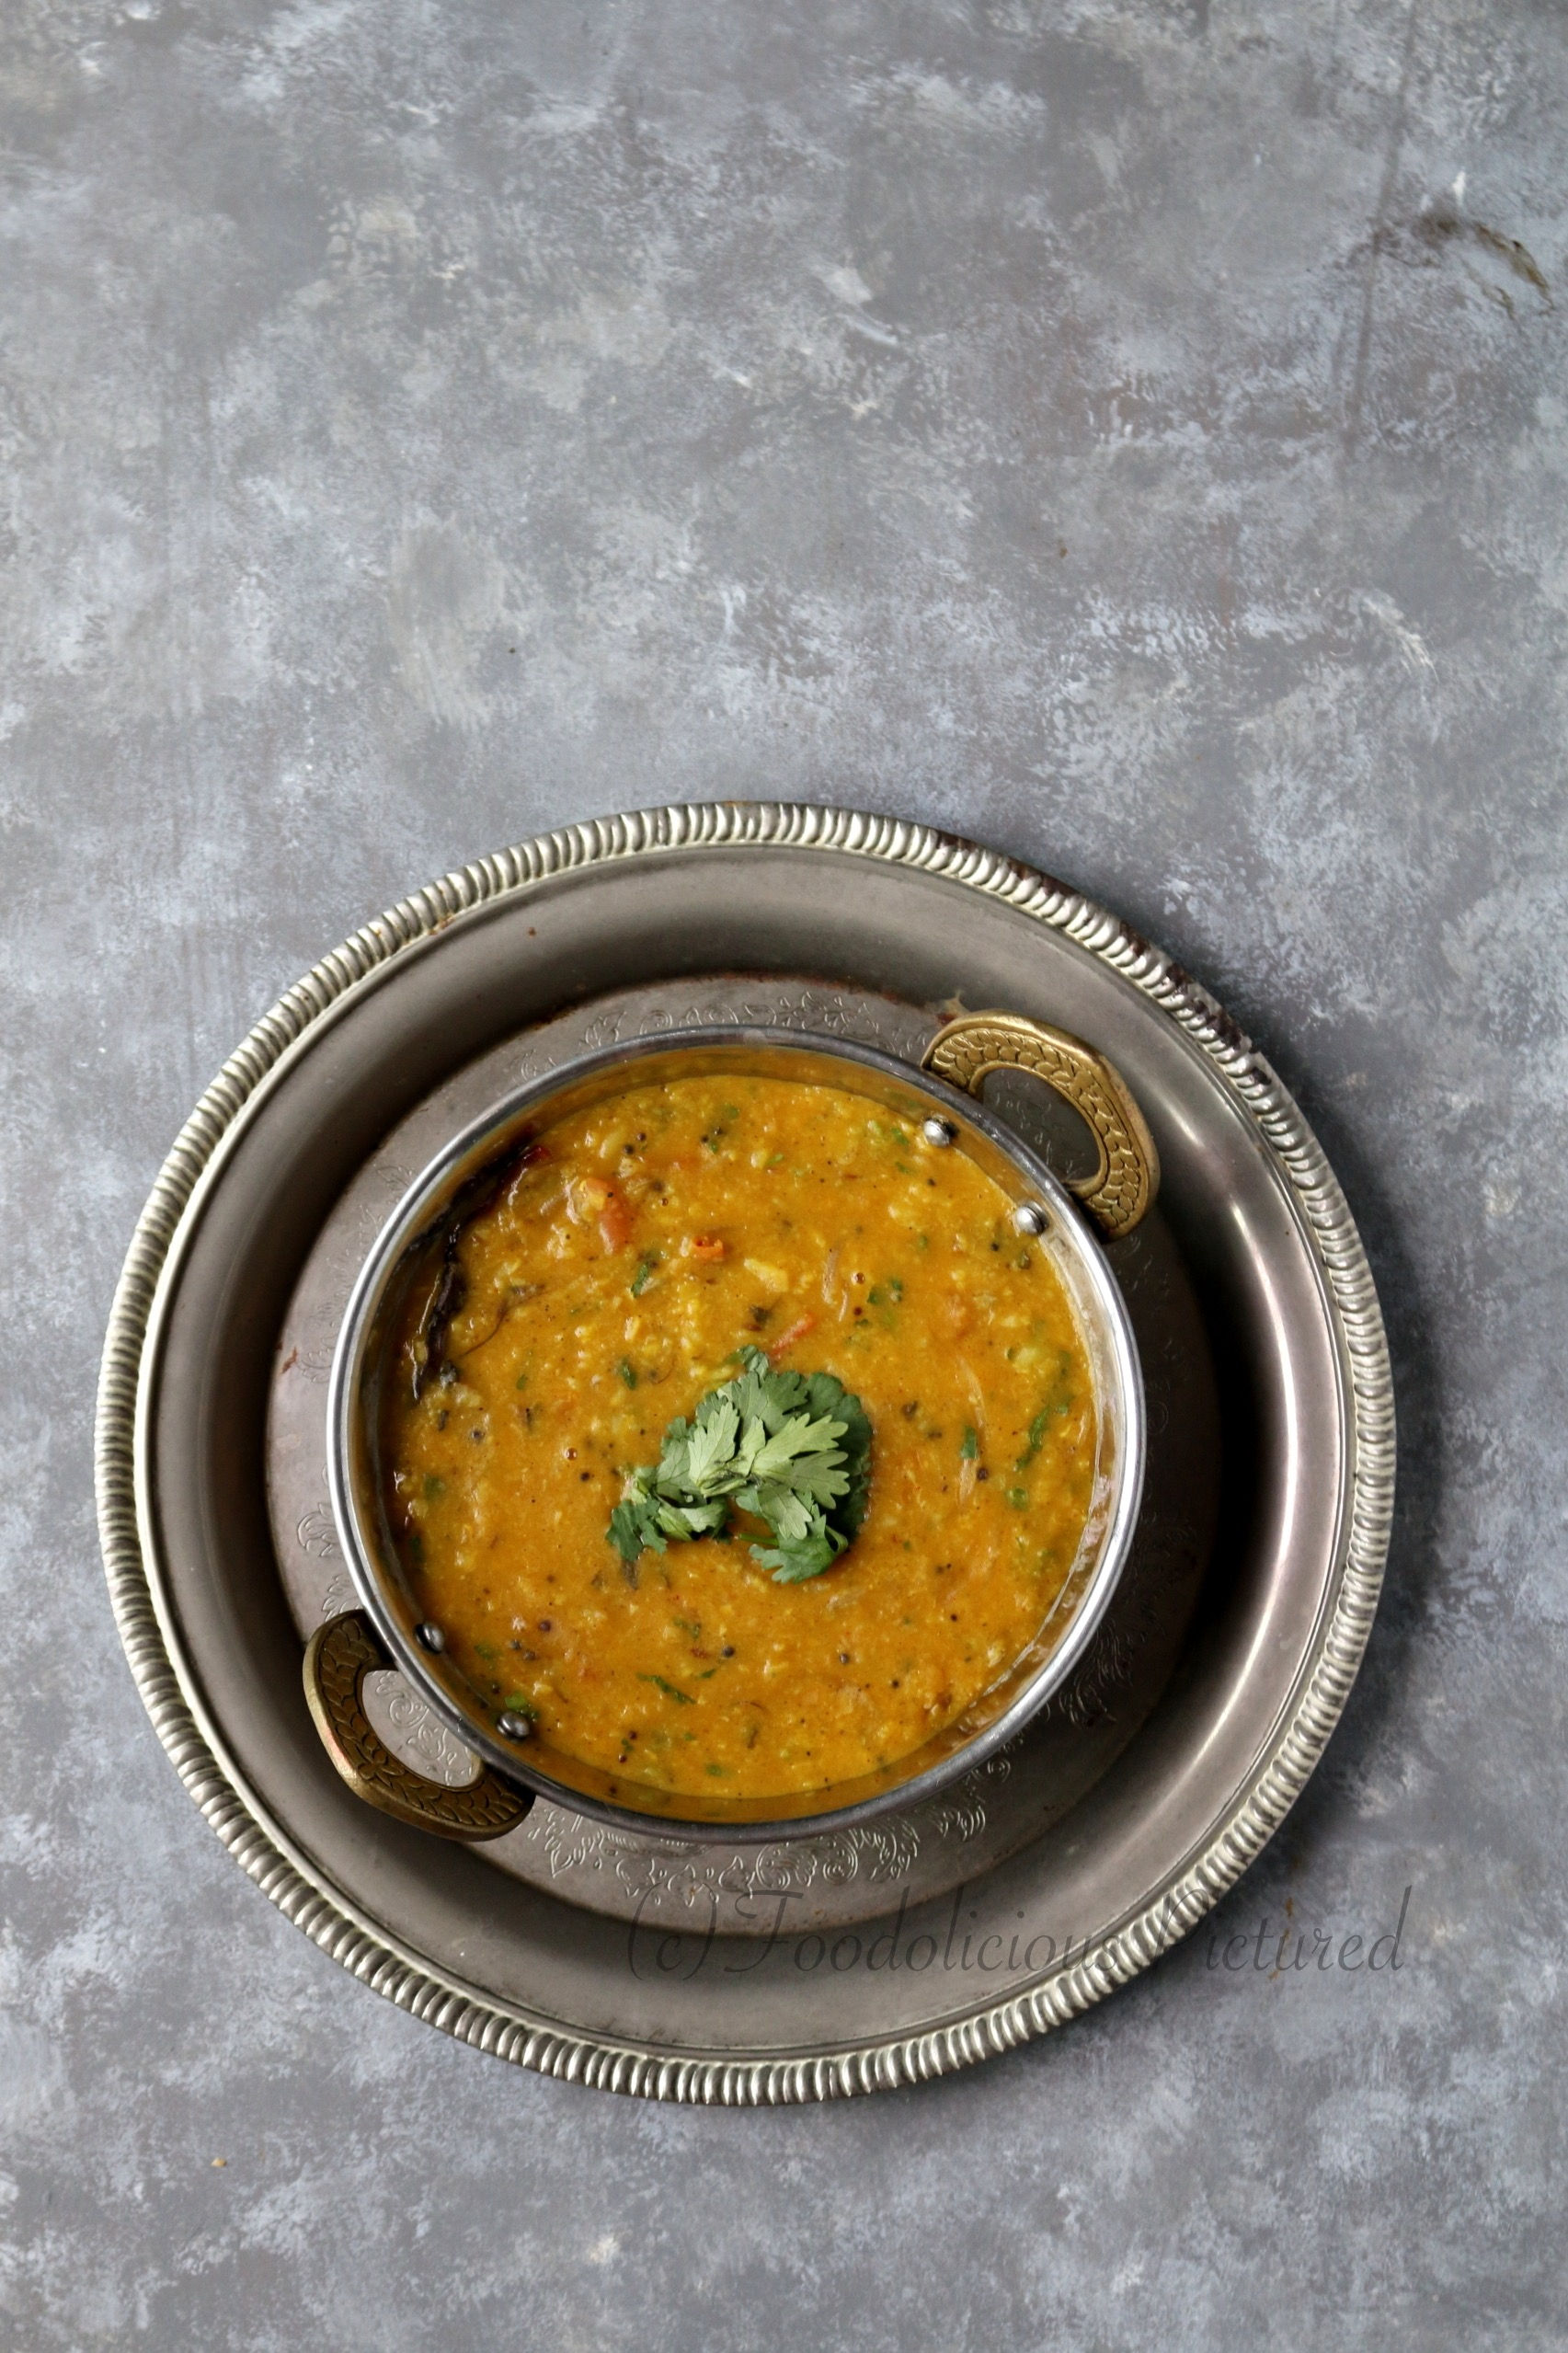 Dal fry Foodolicious Pictured